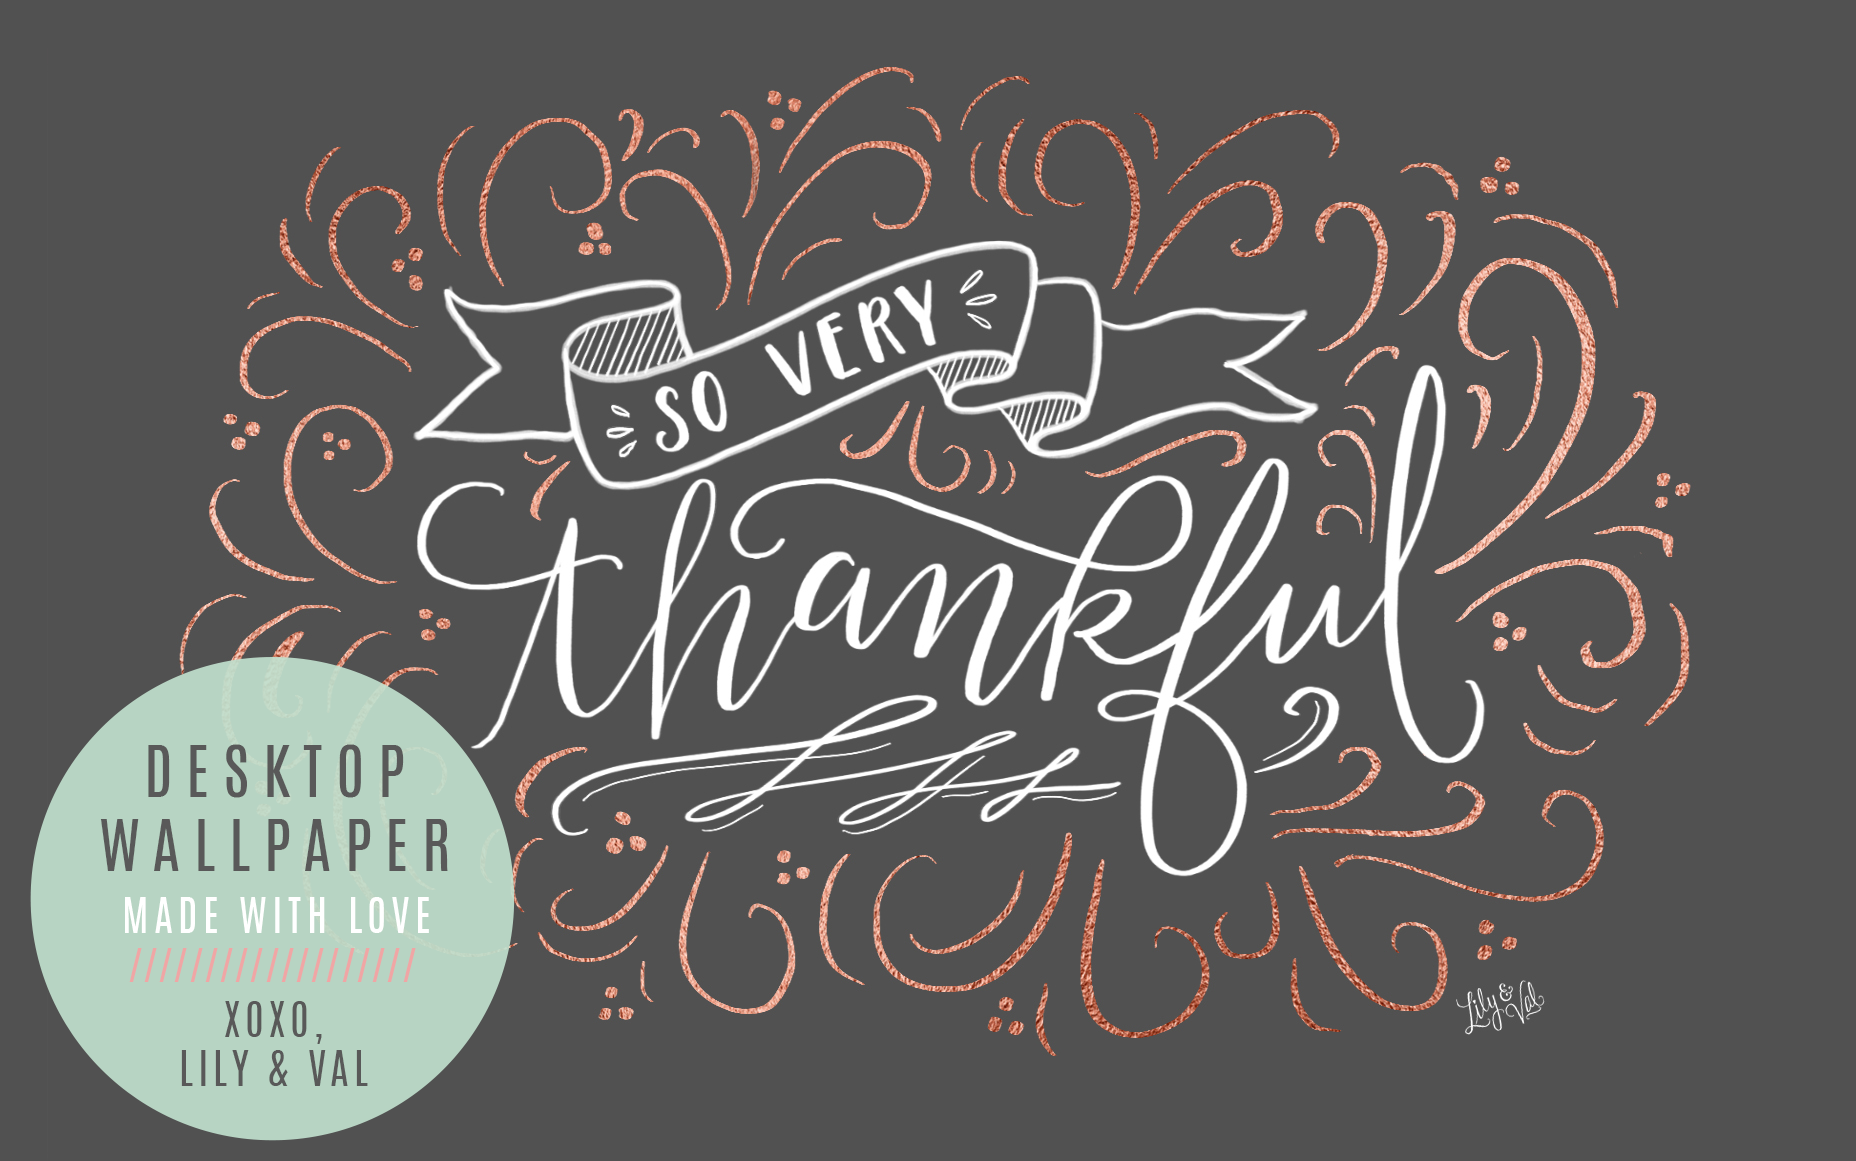 Lily & Val free hand lettered desktop download for November